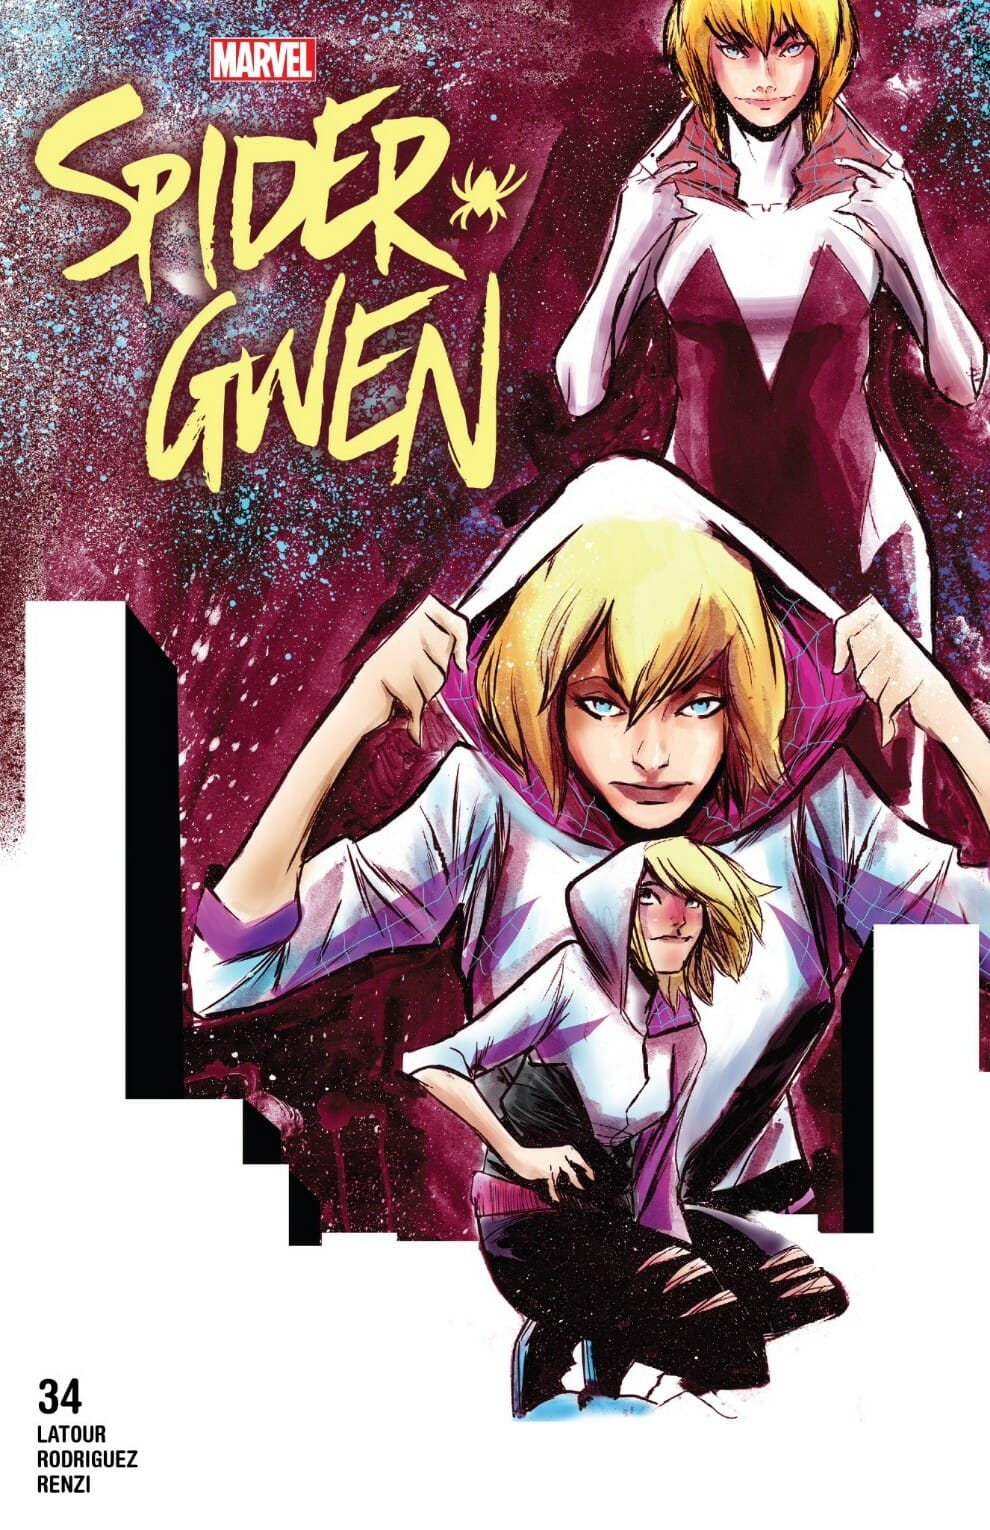 Spider-Gwen #34 (Final Issue) Review - Comic Book Revolution